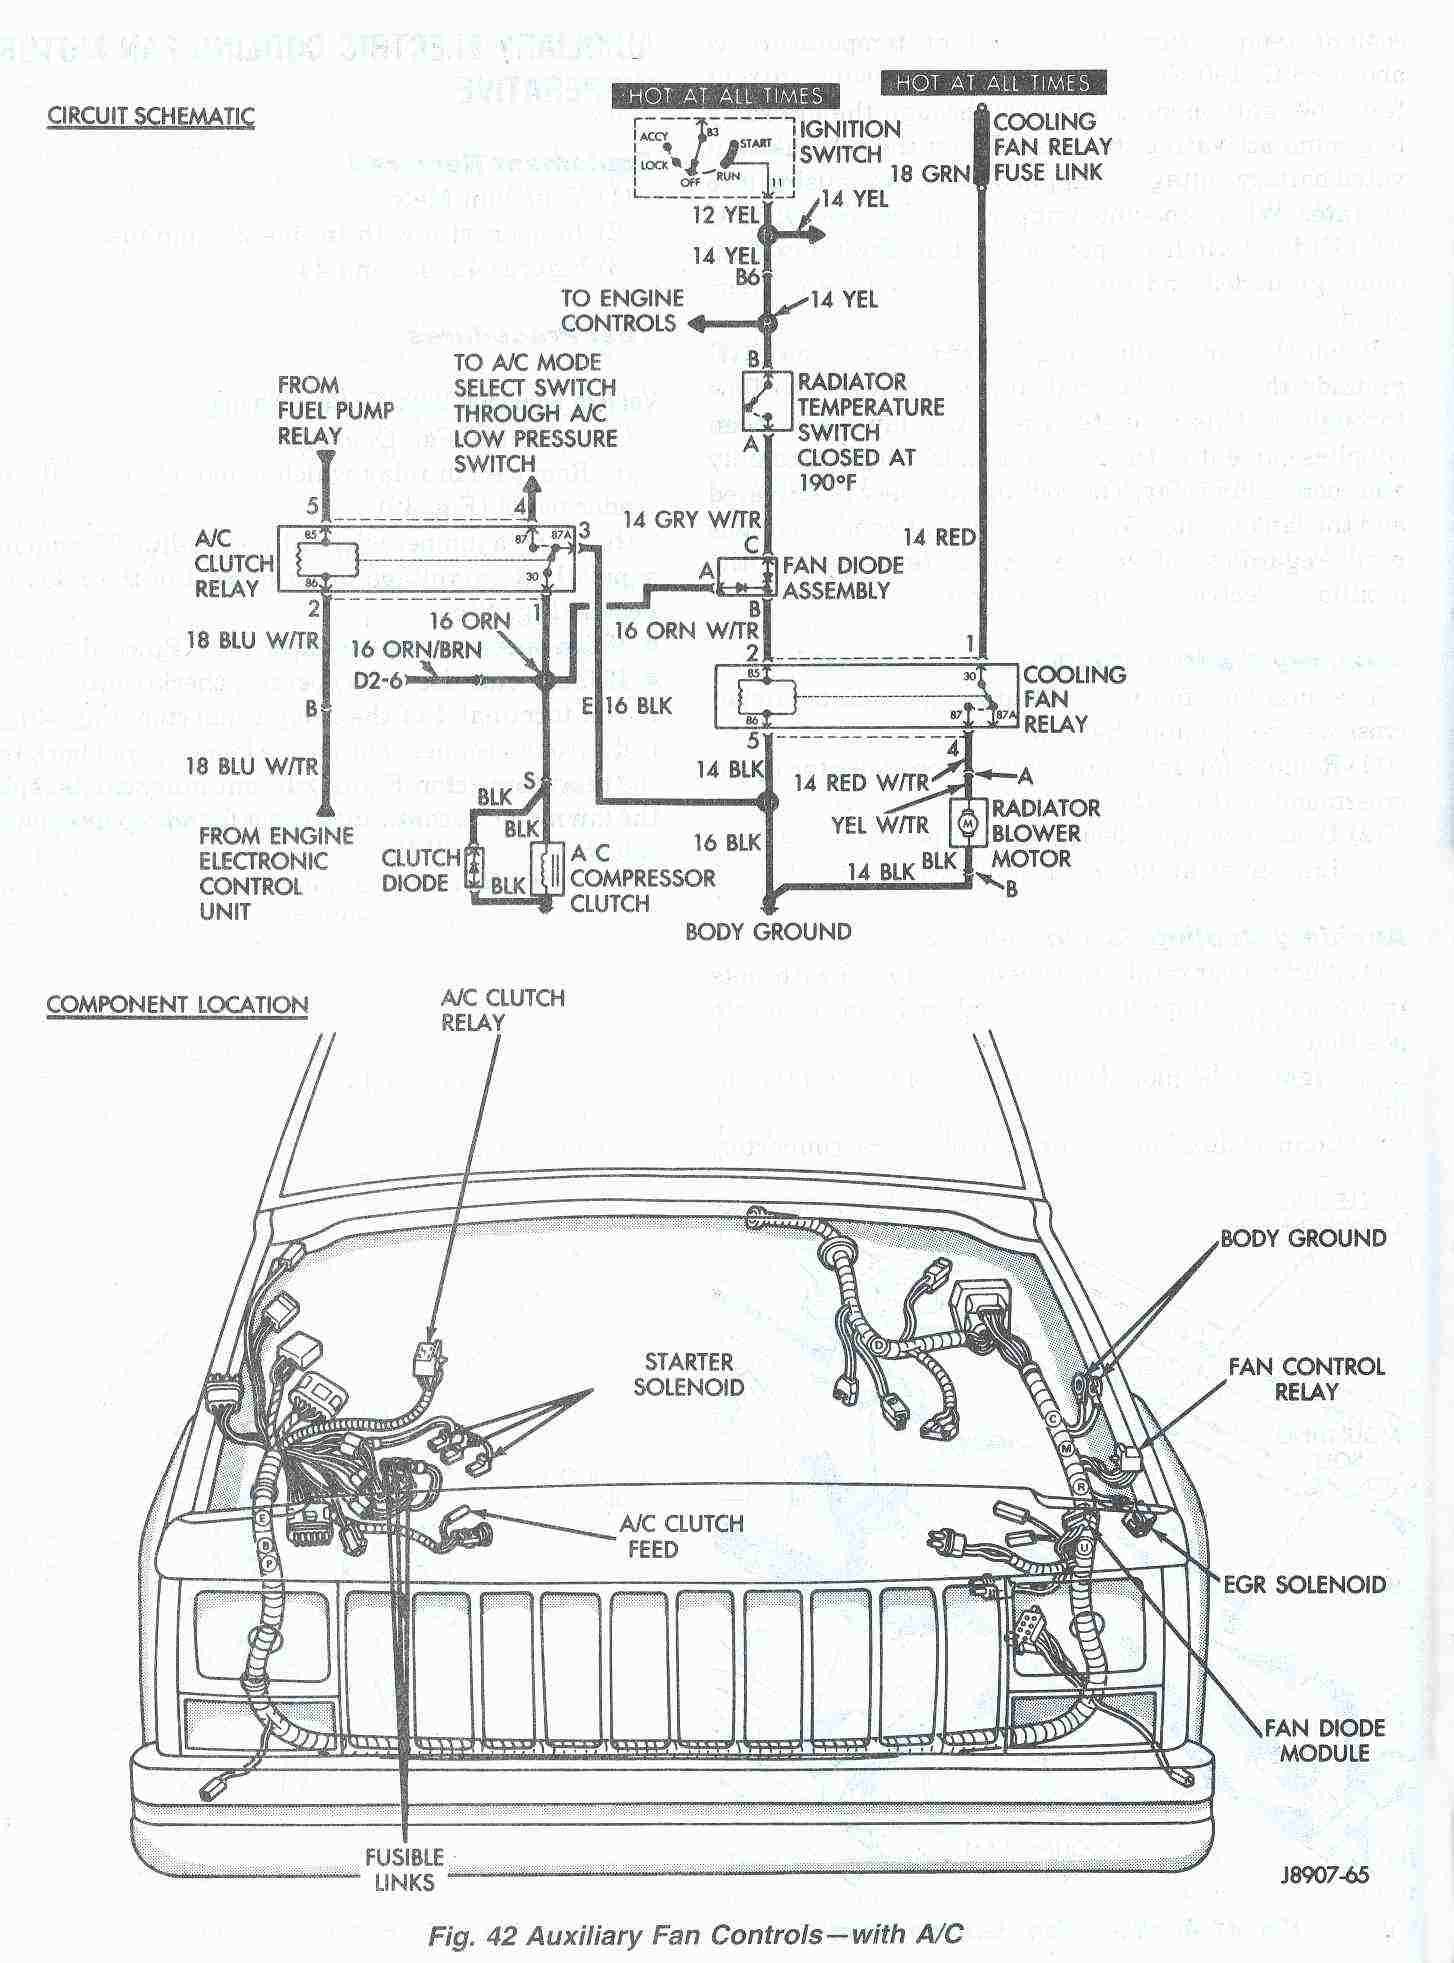 e8c83109bad6c41d377df8c1cb7a8dc4 at the asd relay if vole is not b16 check fuse 20 30 a good there 99 jeep cherokee wiring diagram at edmiracle.co